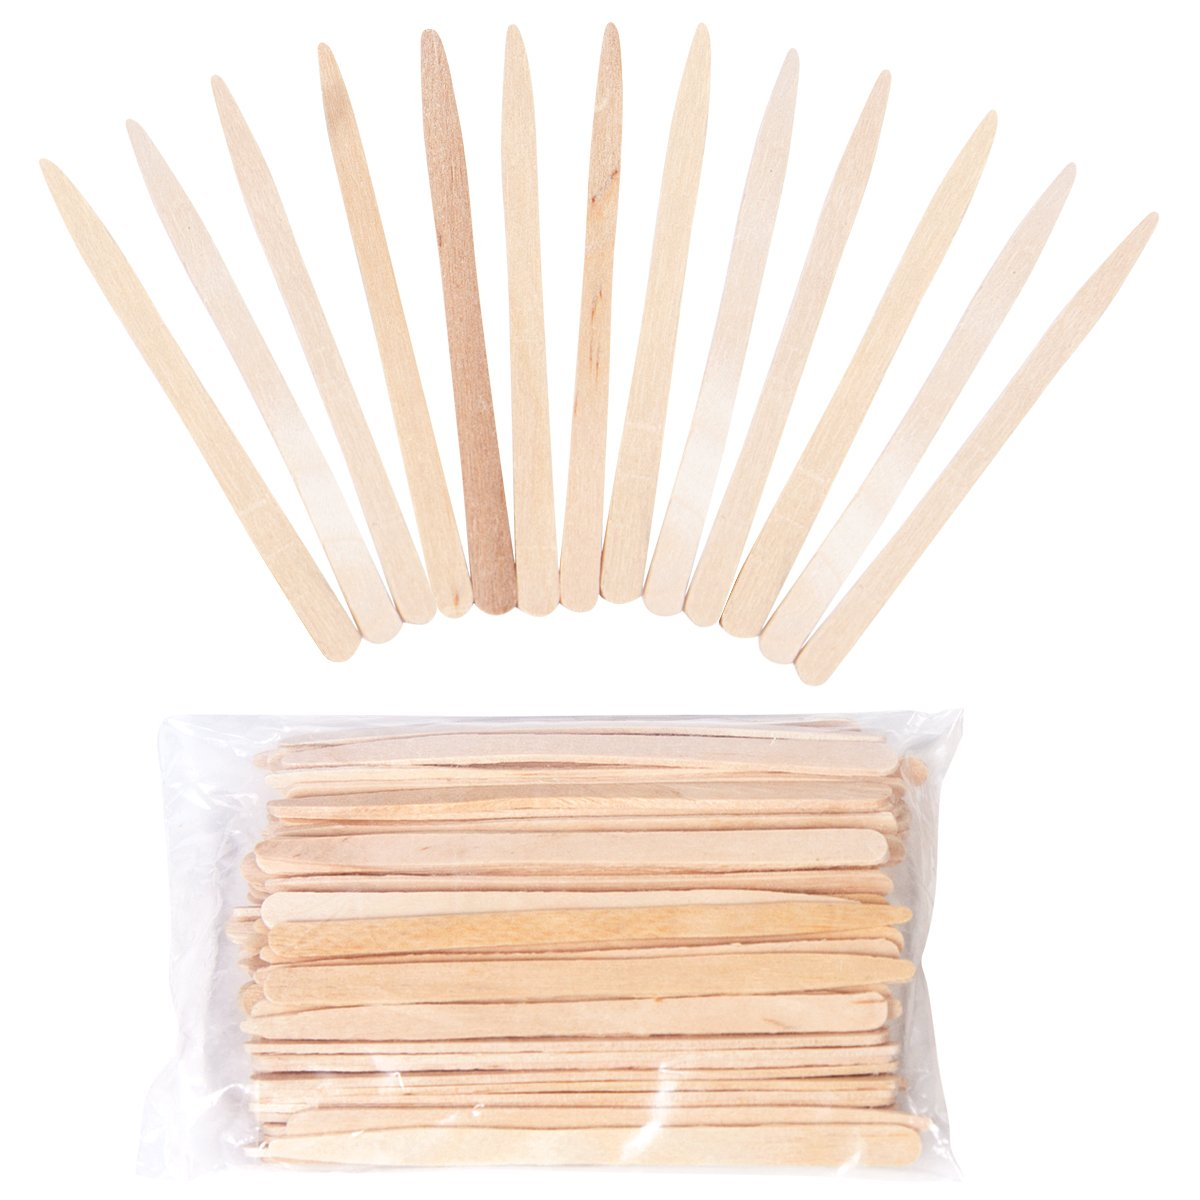 JMT Beauty Wax Applicators Sticks Extra Small - 1000 count